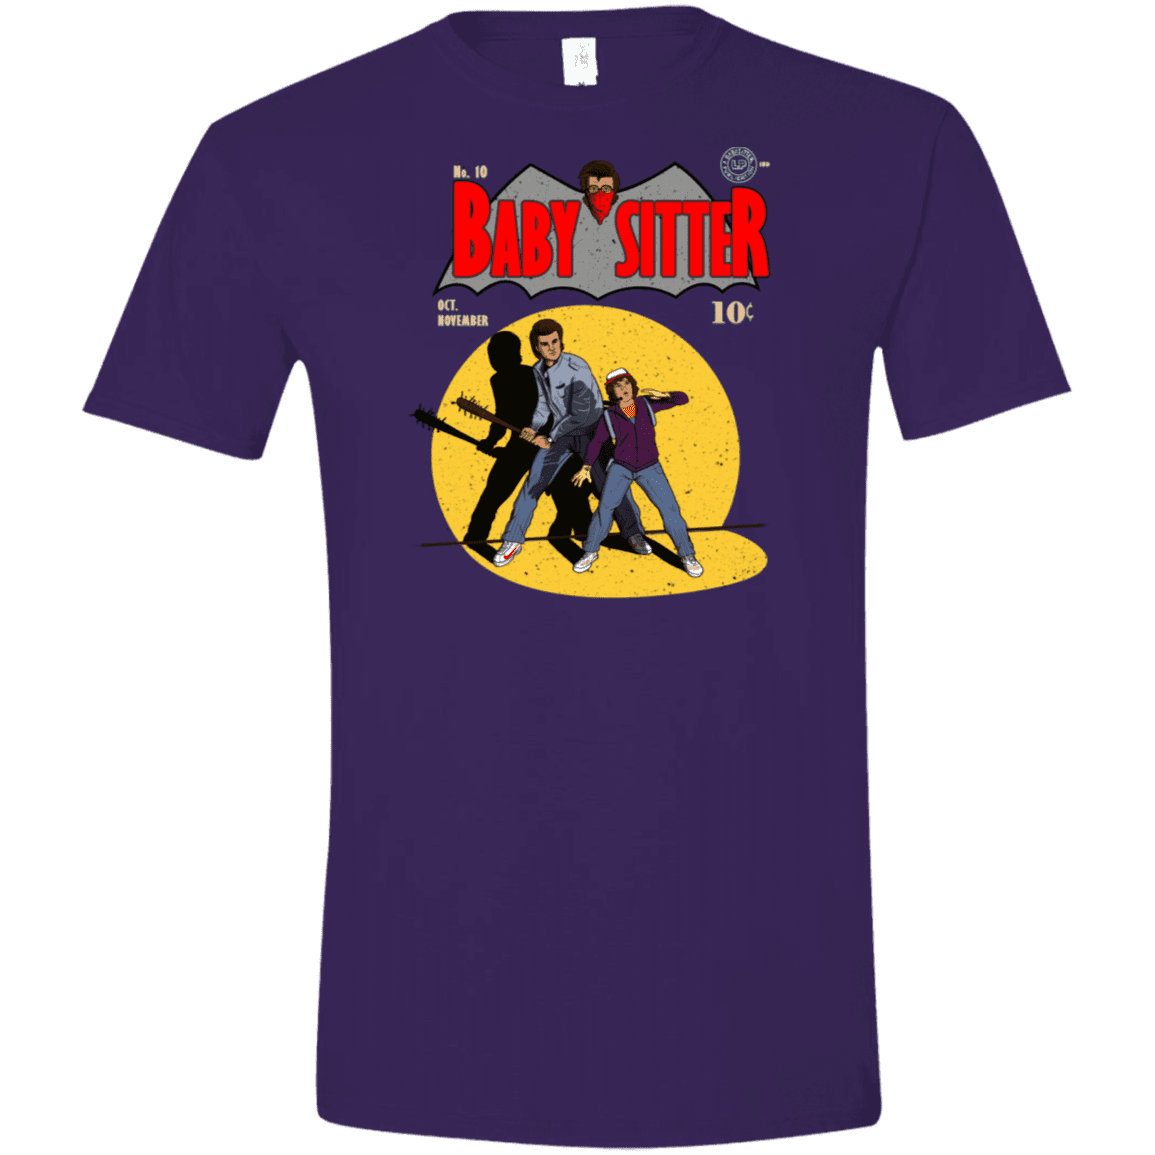 T-Shirts Purple / S Babysitter Batman Men's Semi-Fitted Softstyle